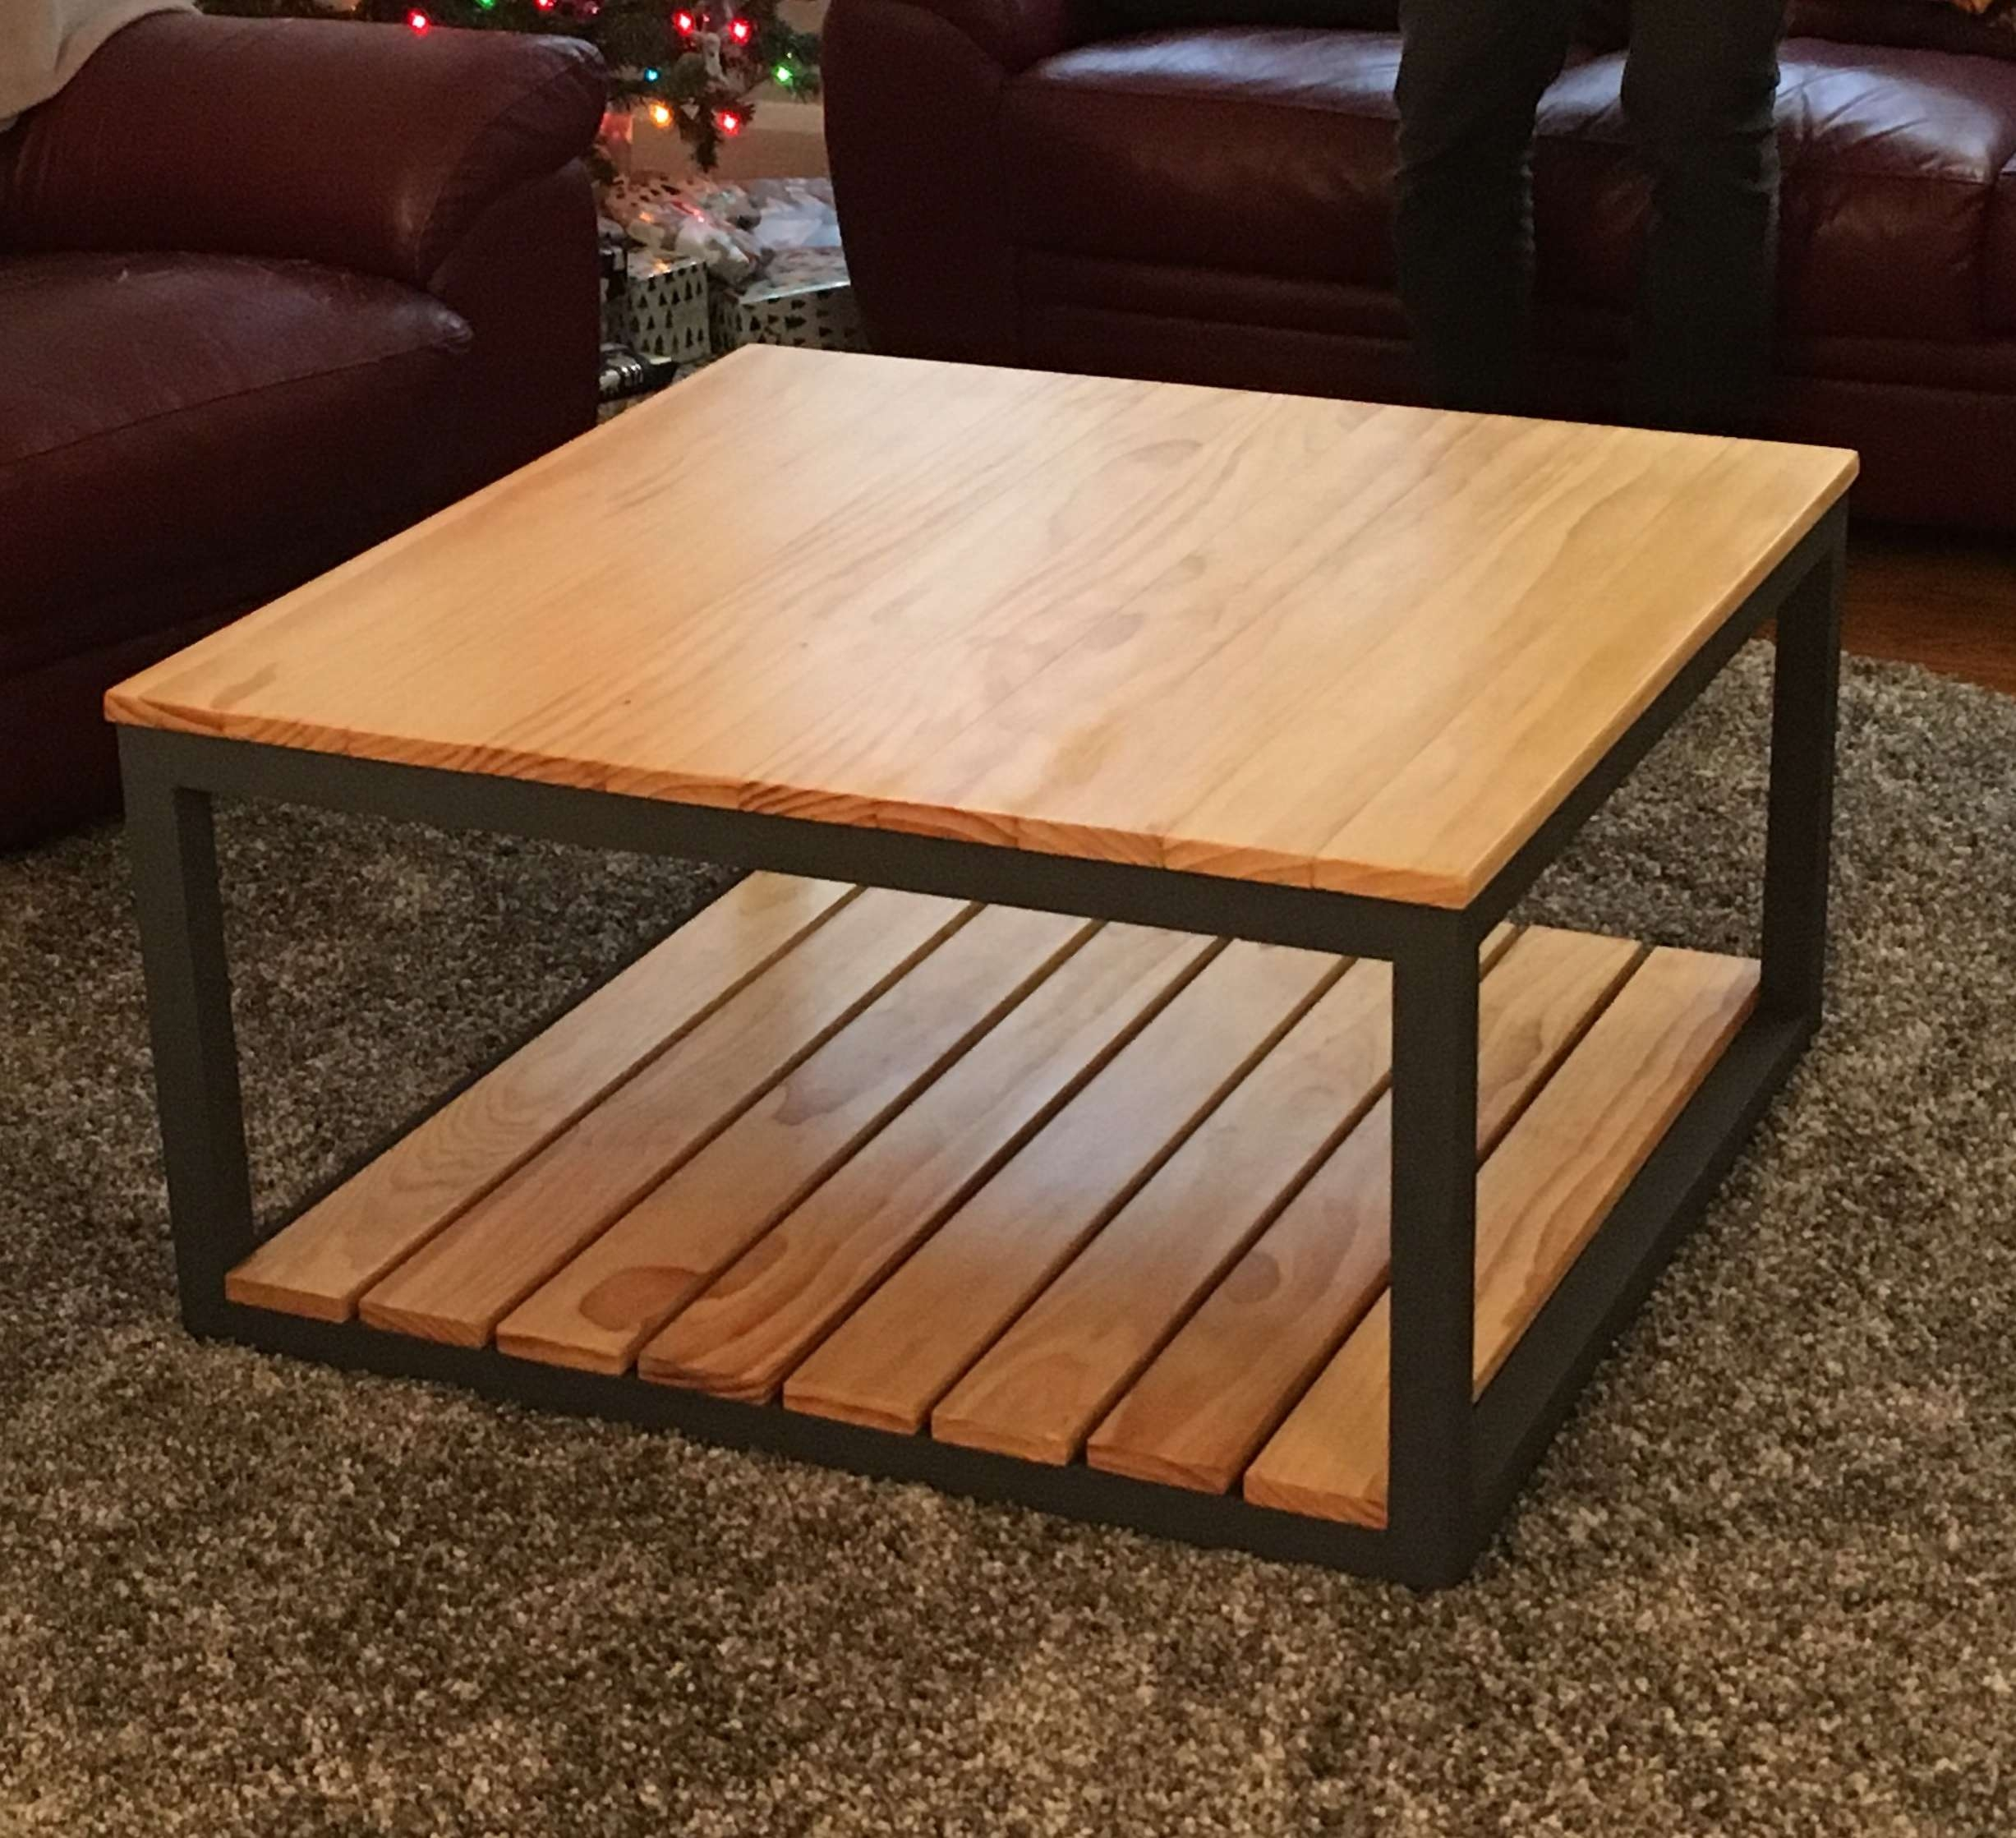 Modified Industrial Style Coffee Table W/ Bottom Shelf With Favorite Coffee Table Industrial Style (View 17 of 20)